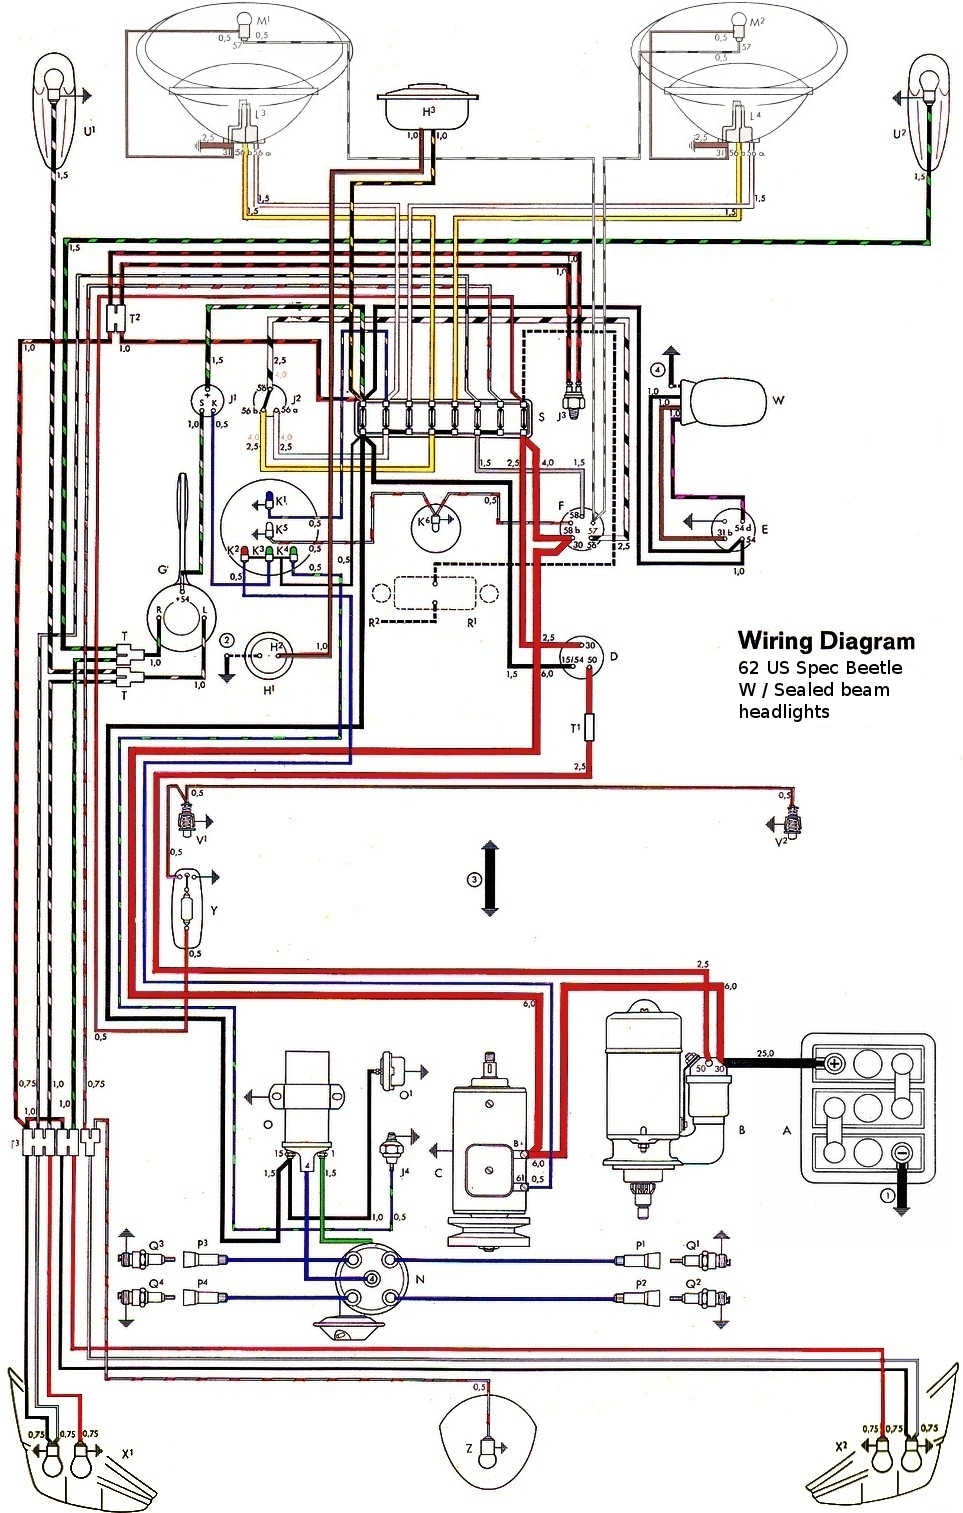 Vw Headlight Wiring Auto Electrical Diagram 1972 Mgb Harness Thesamba Com Type 1 Diagrams